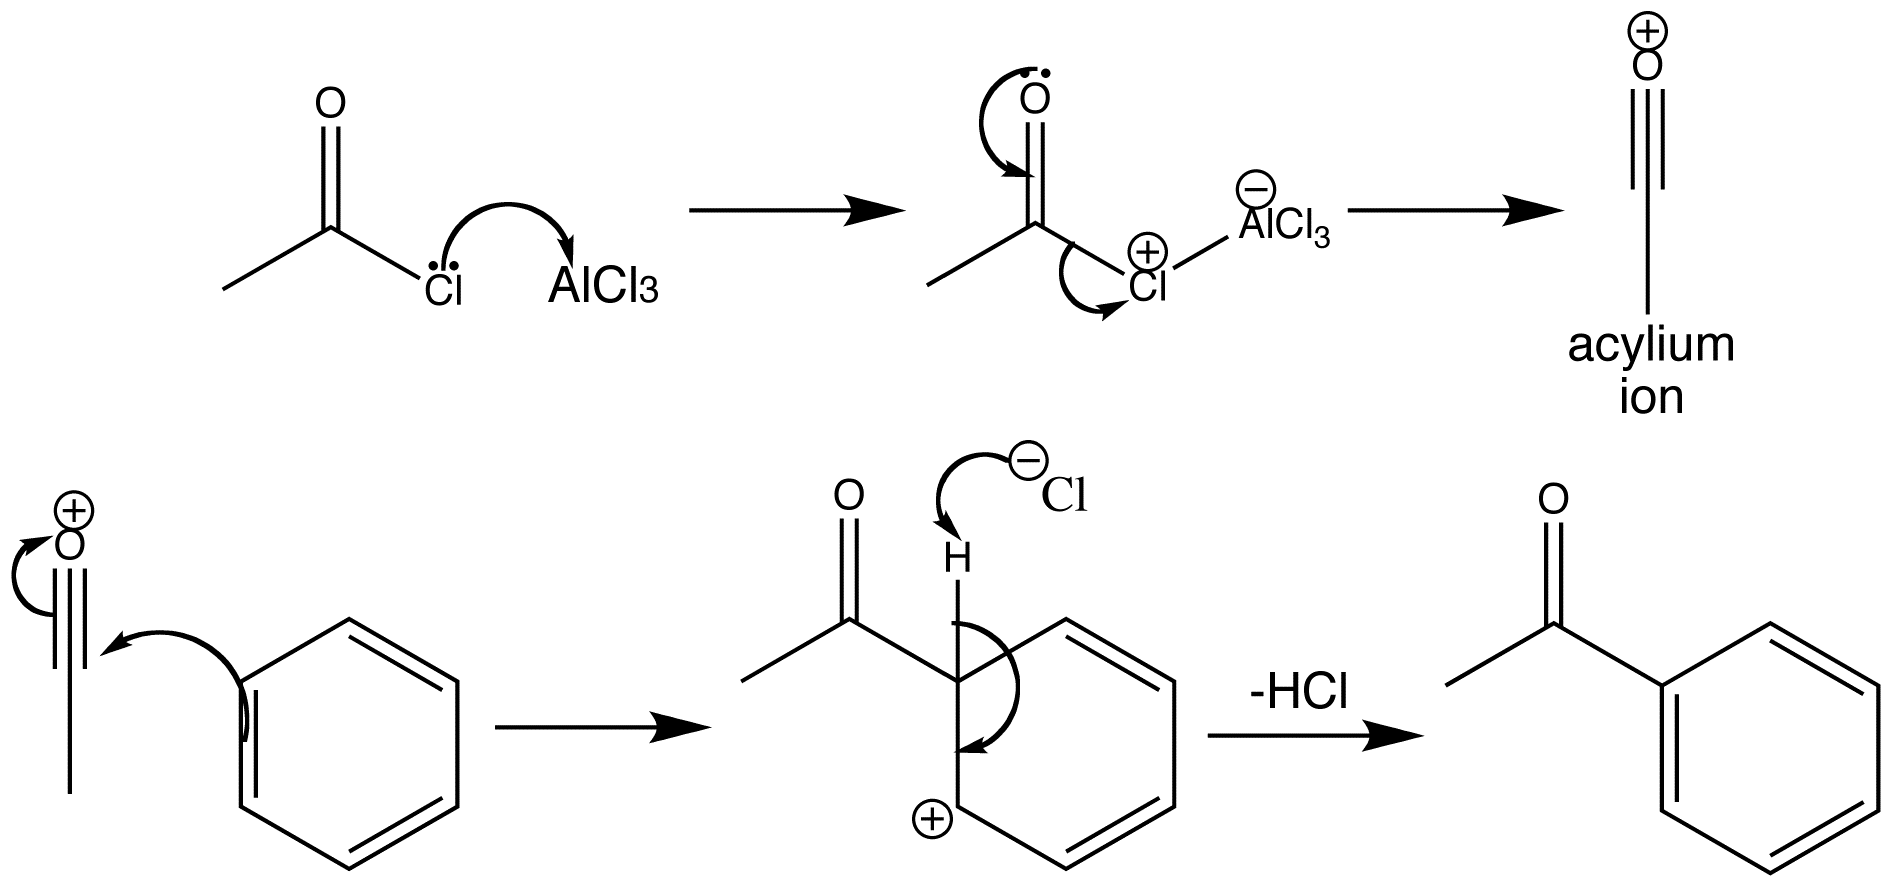 Electrophilic aromatic substitution - Friedel-Crafts acylation